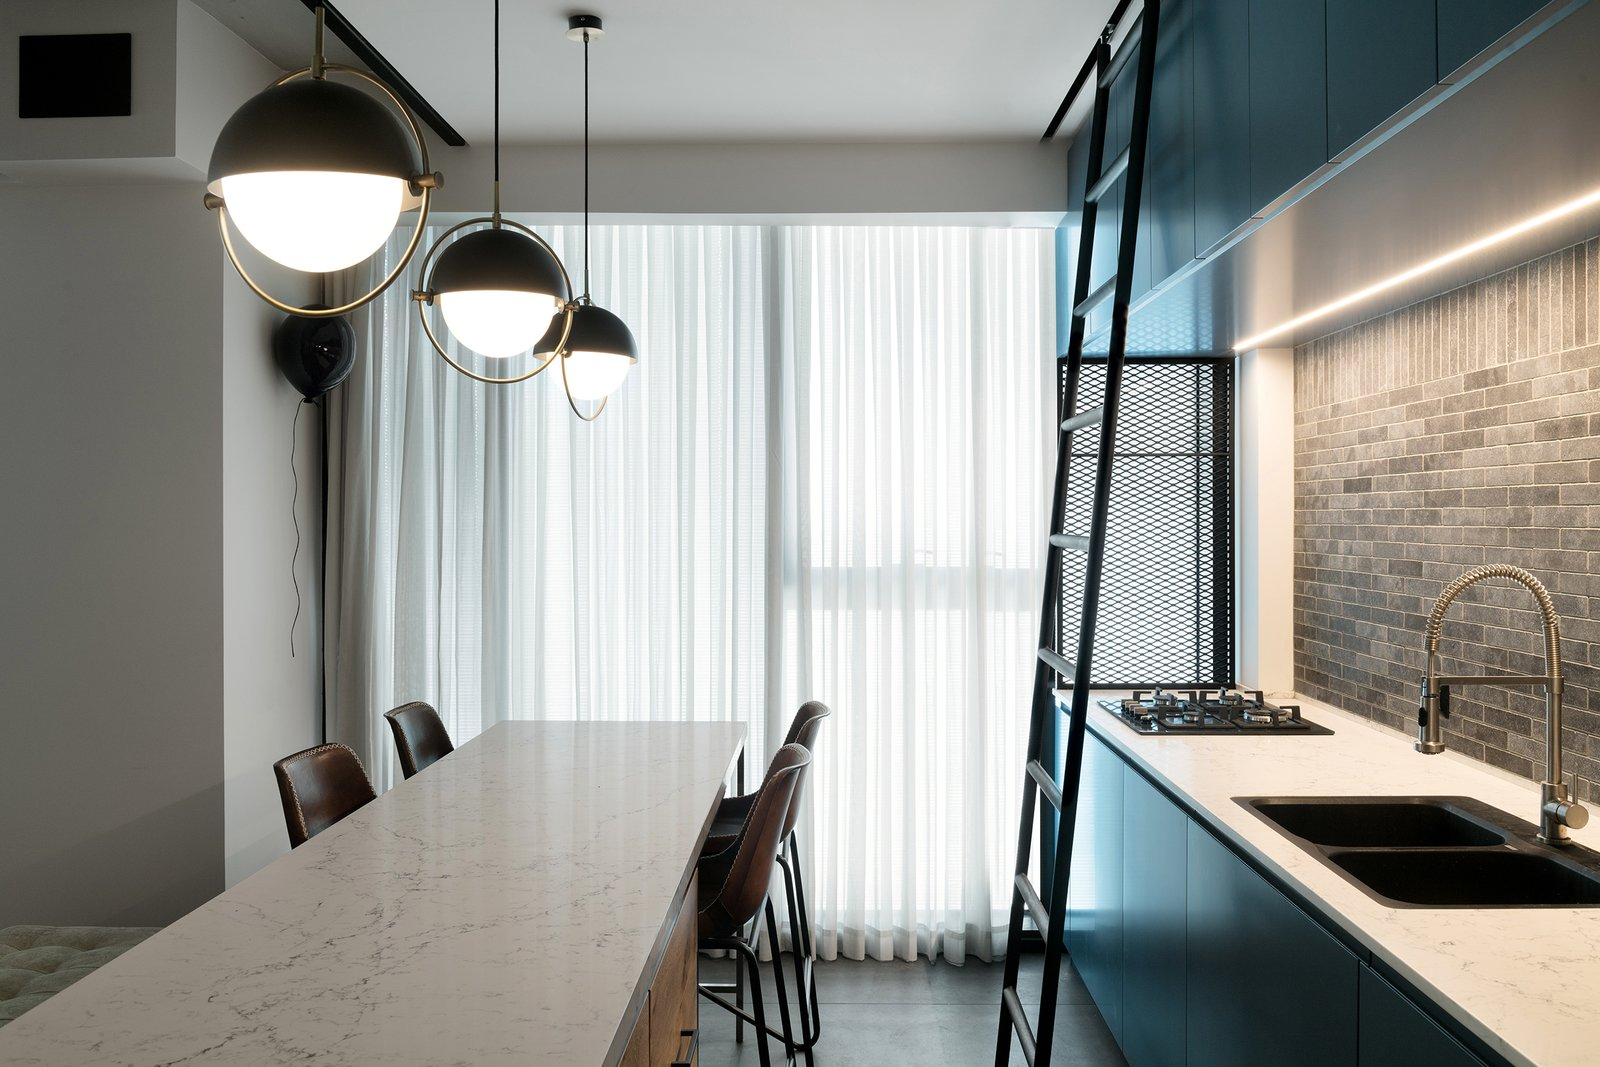 Surrounded by floor-to-ceiling windows on all sides, the material palette for the unit includes contemporary industrial touches such as iron, glass, and wood.